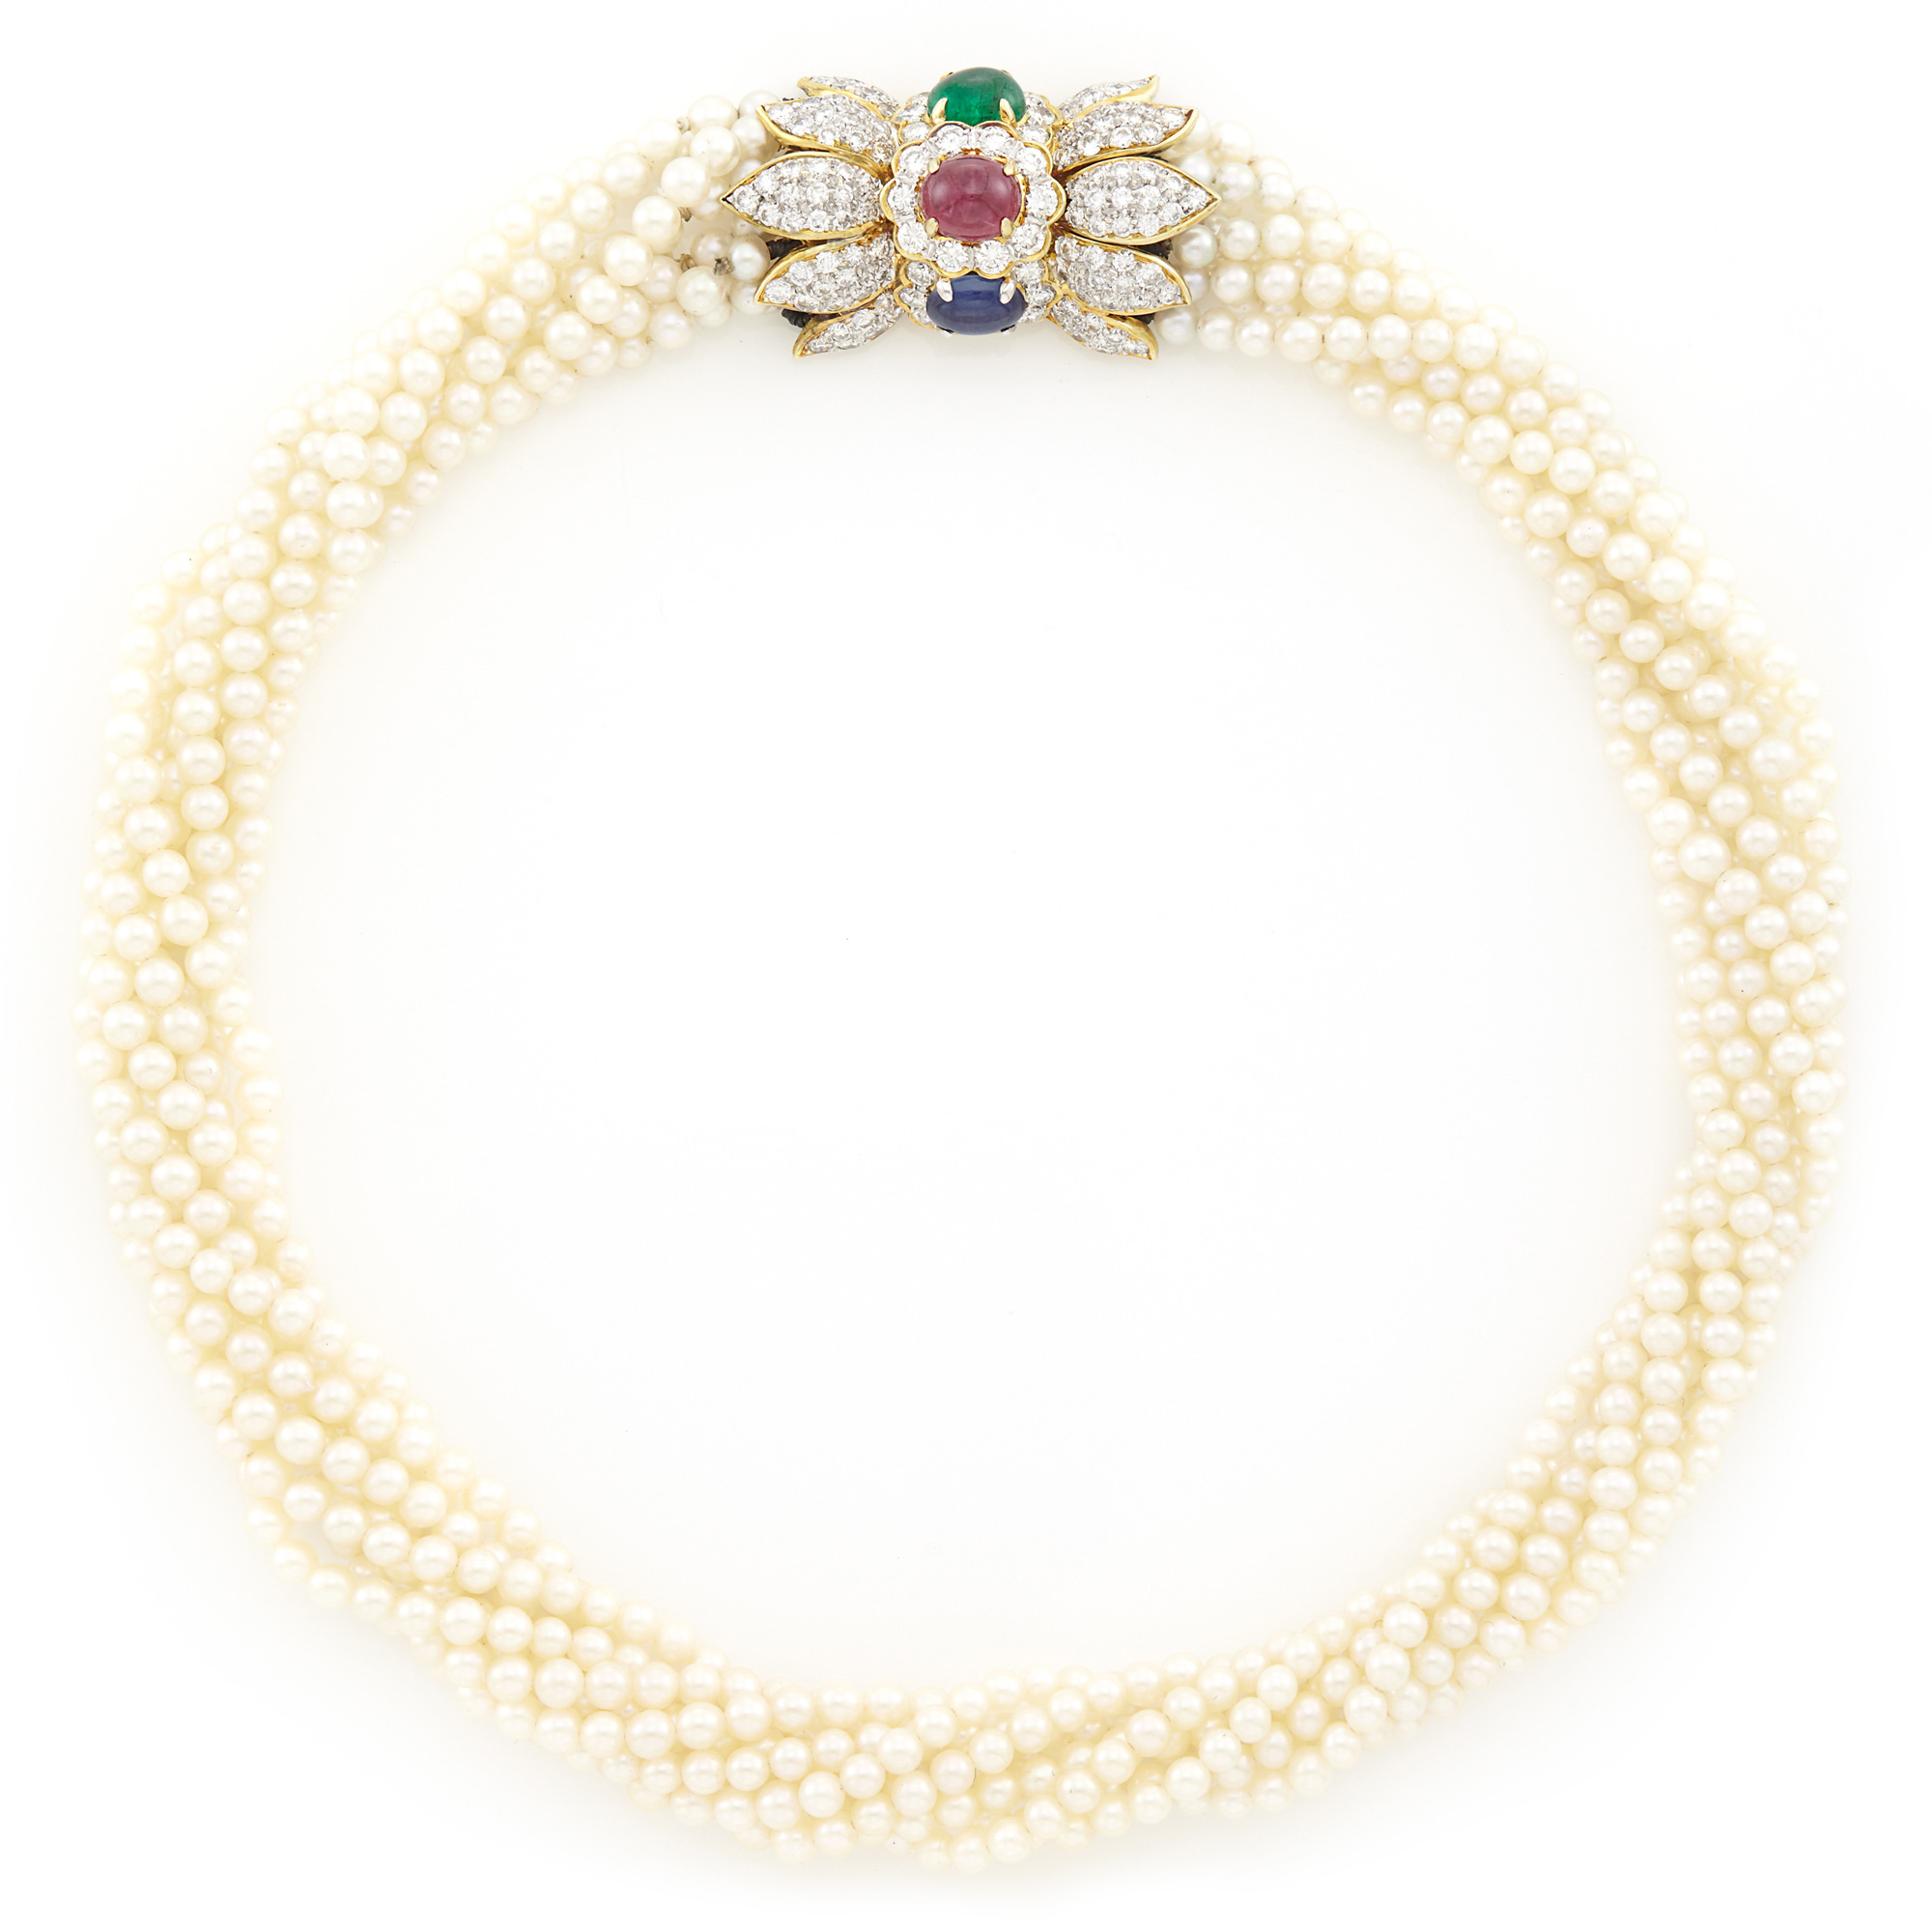 Lot image - Multistrand Cultured Pearl Torsade Necklace with Gold, Diamond and Cabochon Colored Stone Clasp